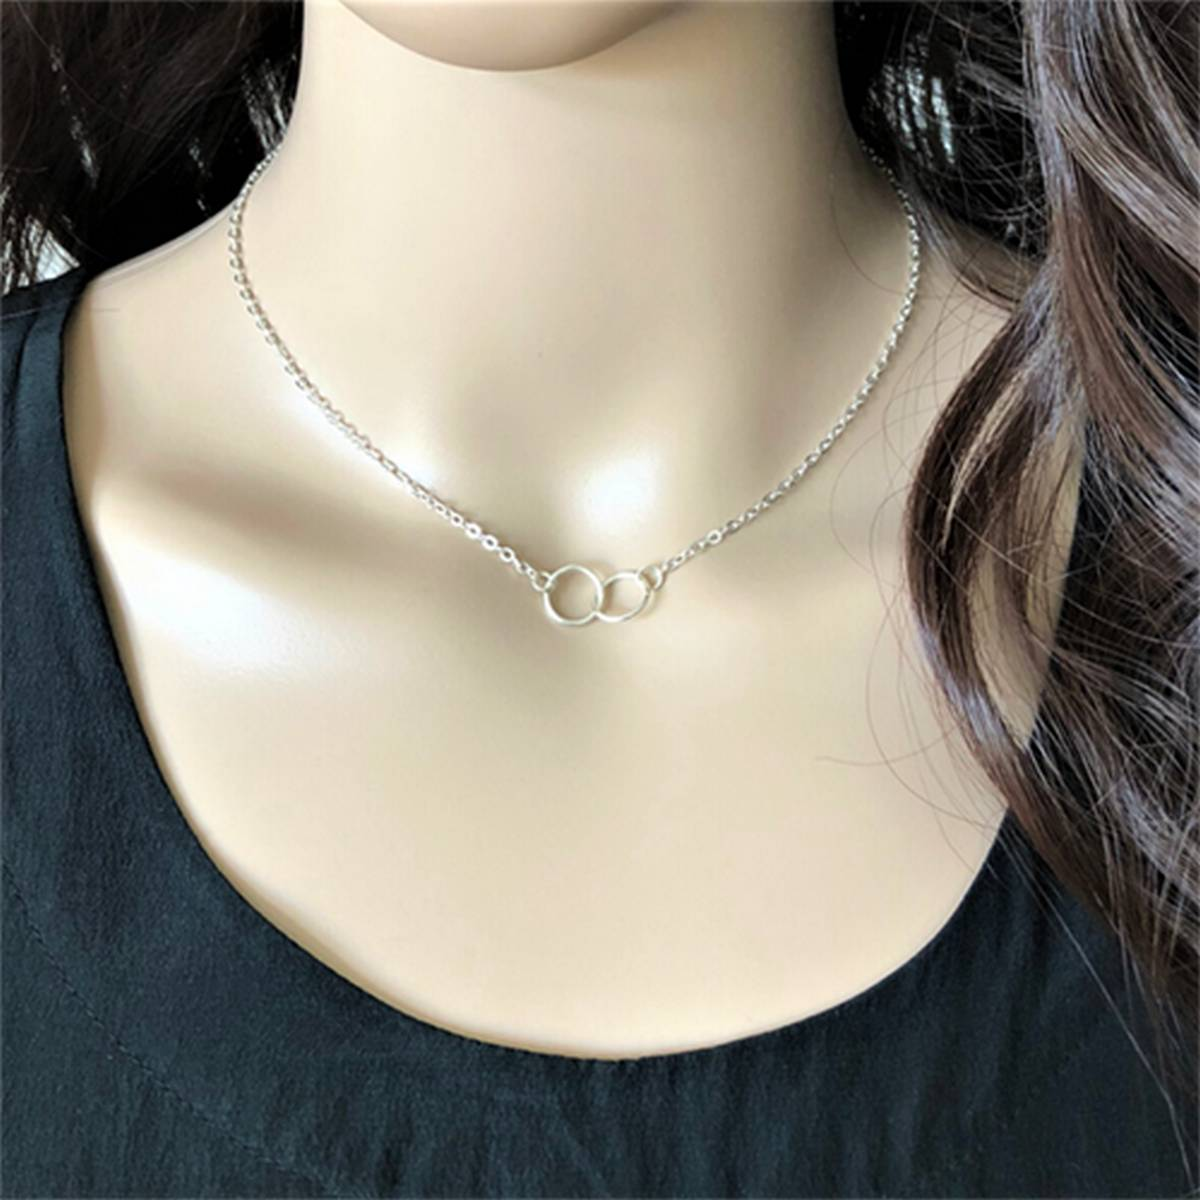 Silver/Golden Simple Double Ring Pendant Necklace/Chocker for Girls/Women